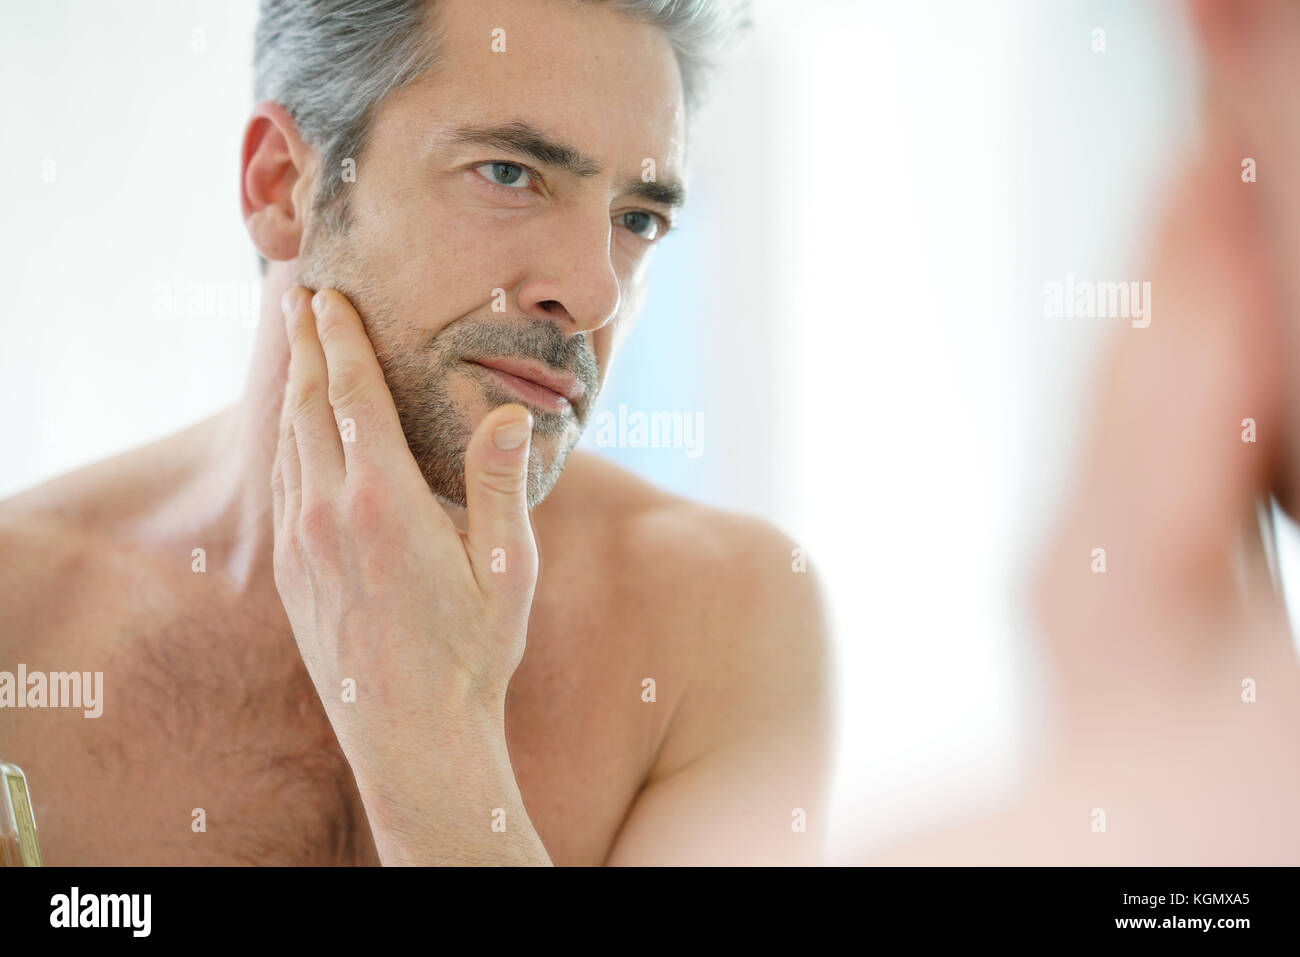 Portrait of mature man in front of mirror applying facial cream - Stock Image